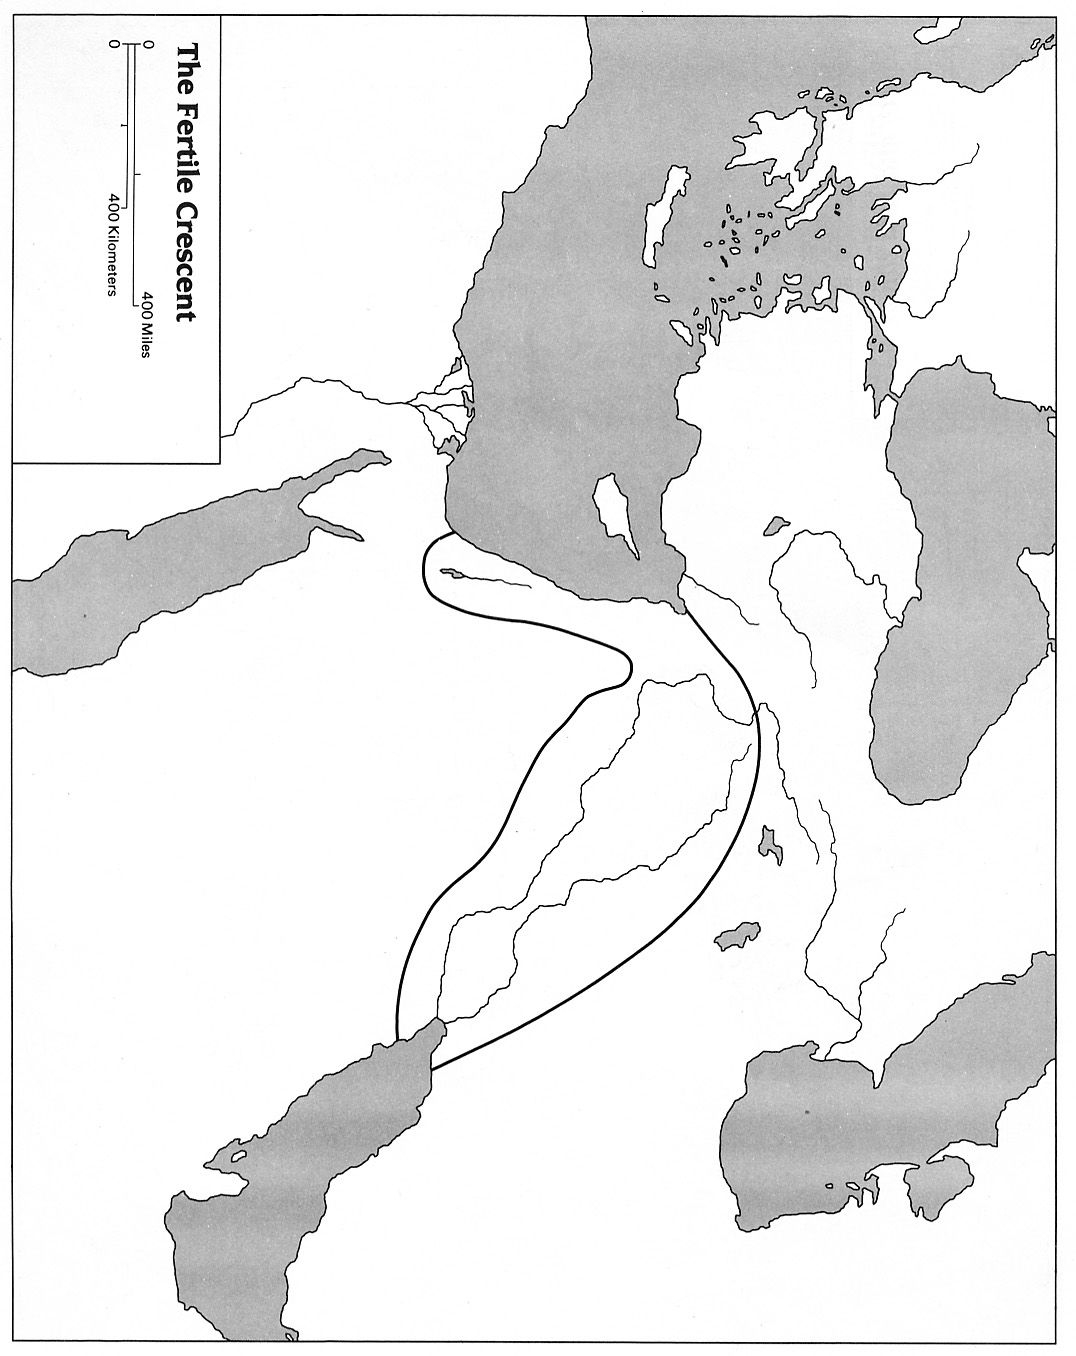 Blank Map Of Mesopotamia For Labeling   Mesopotamia For Kids - Free Printable Map Of Mesopotamia